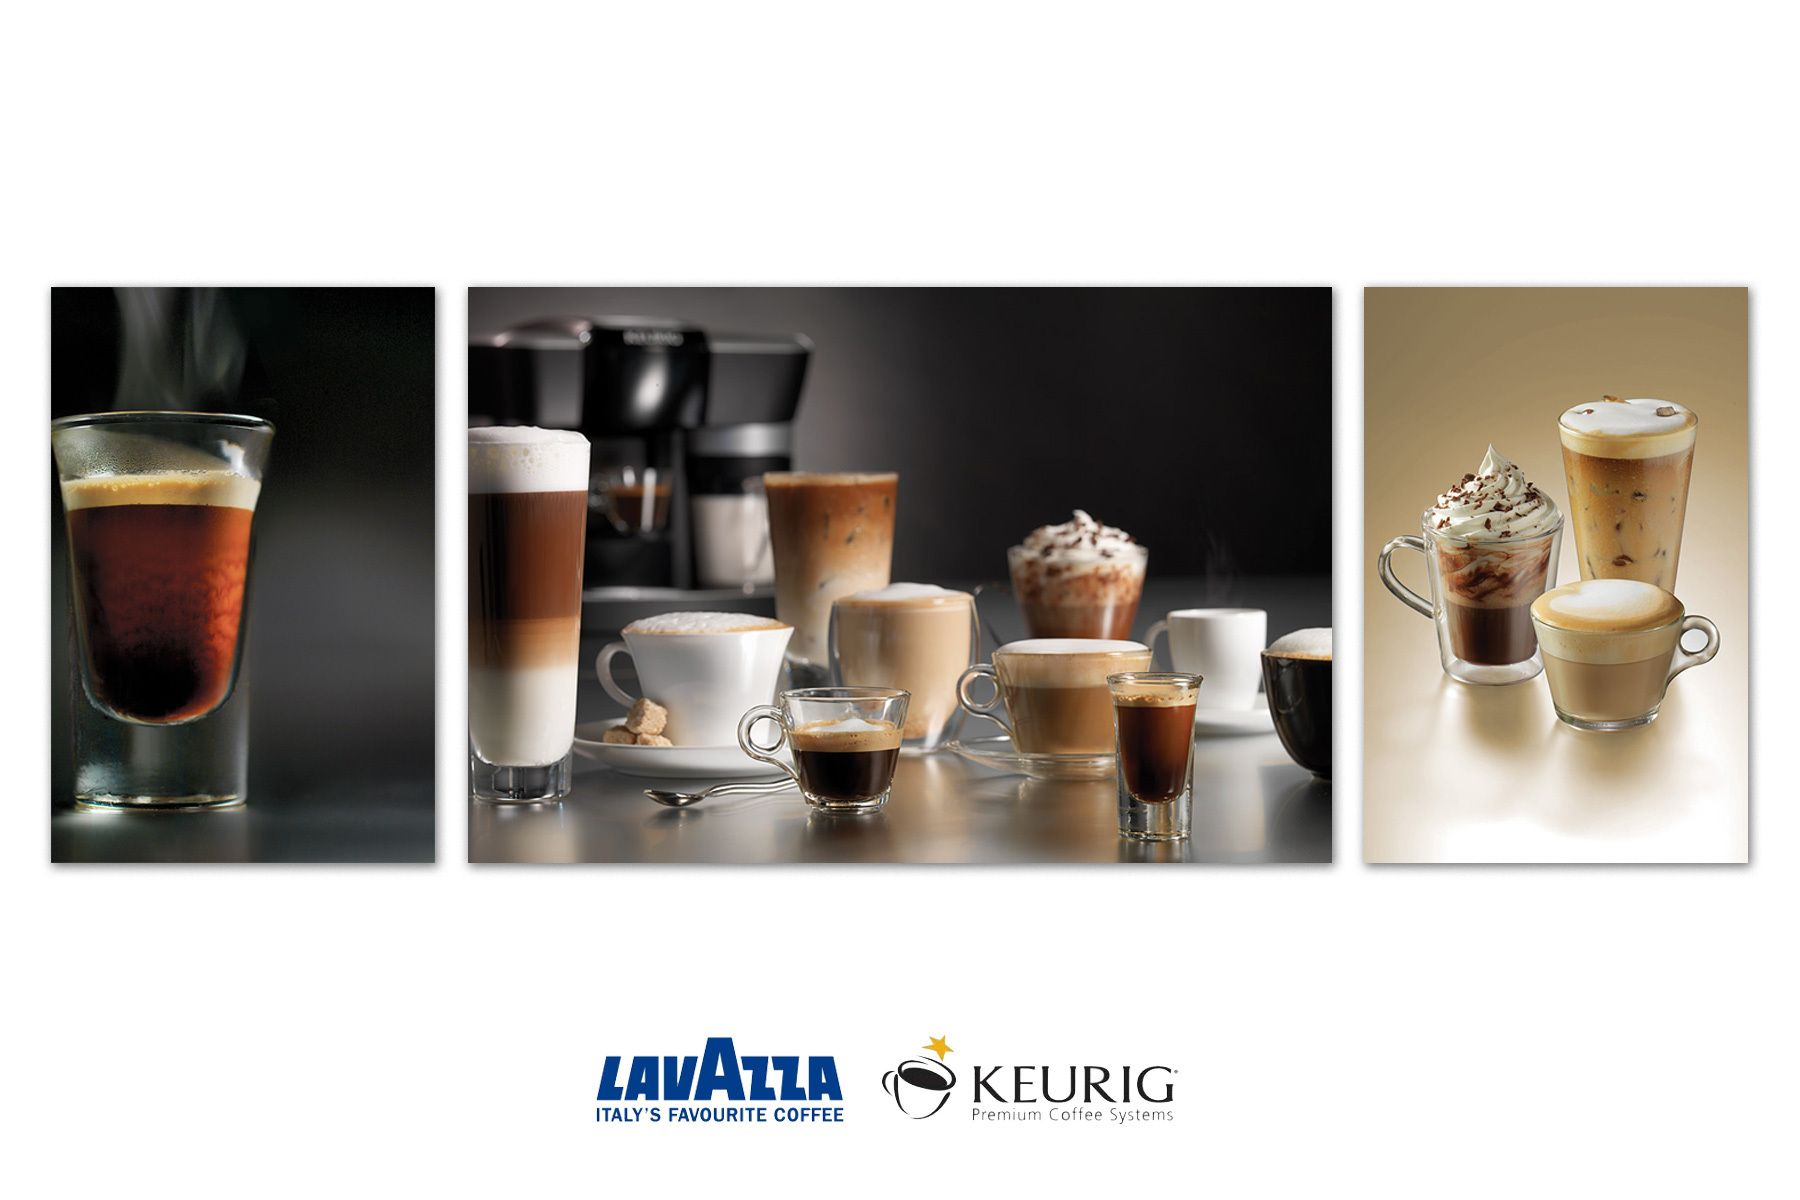 Lavazza and Keurig